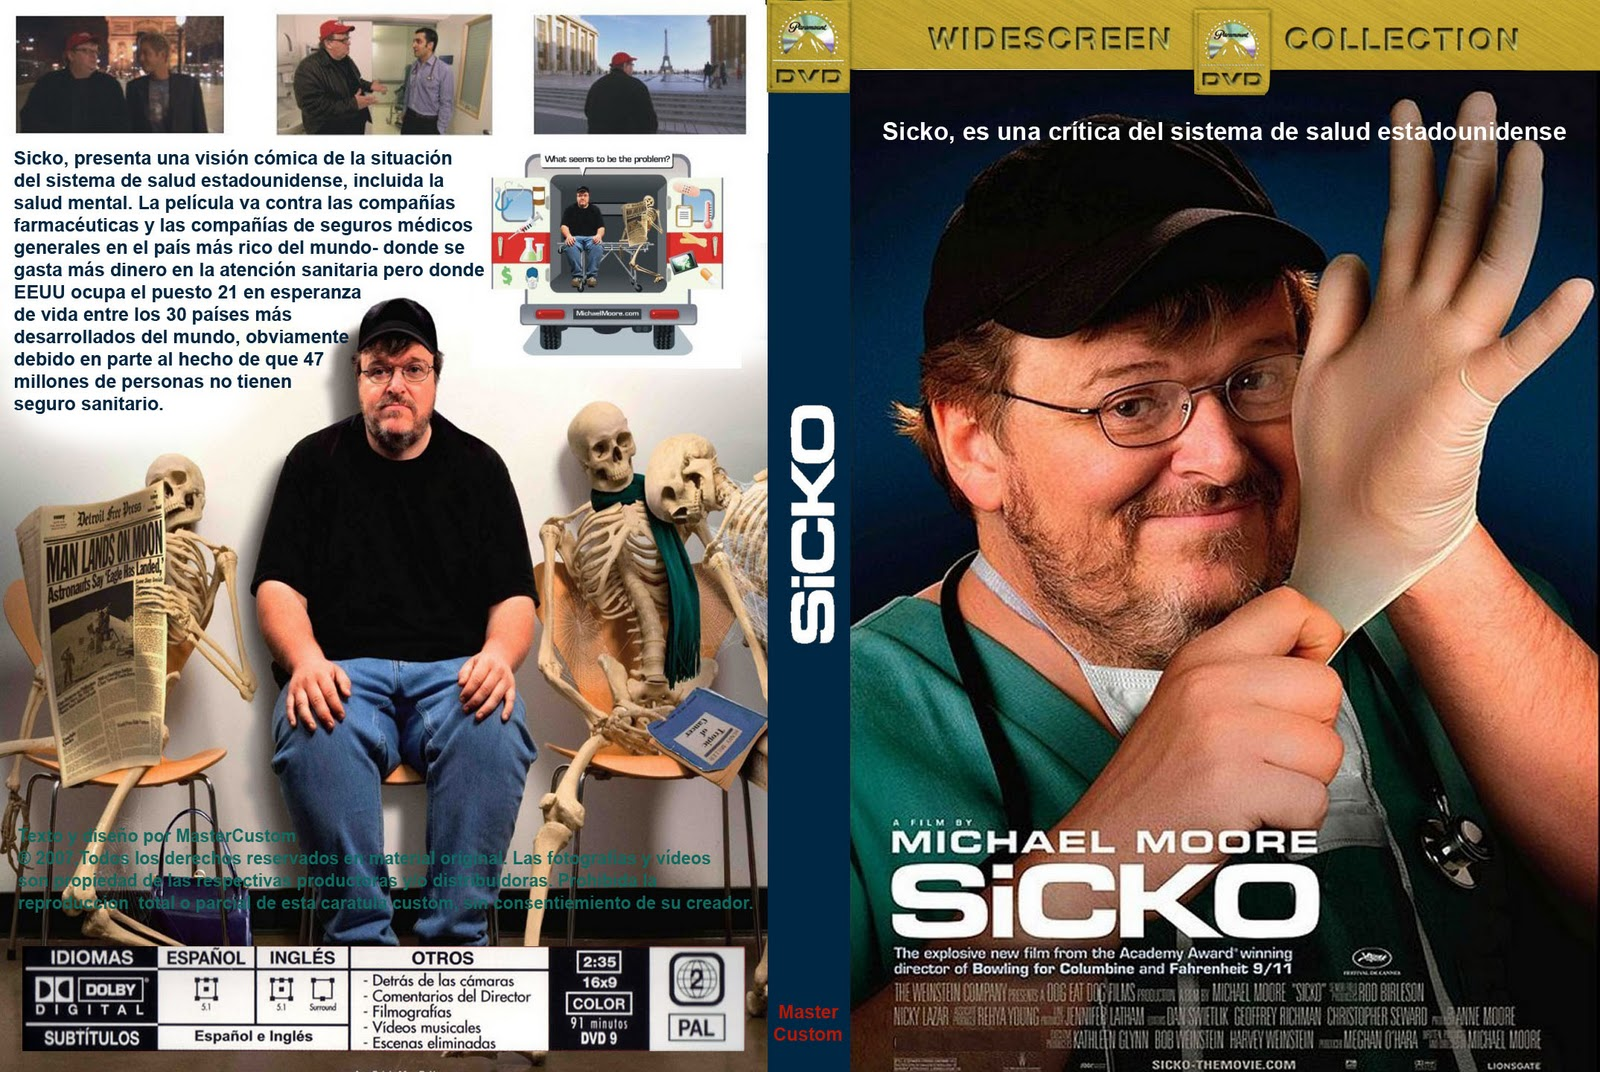 essay about sicko by michael moore college paper writing service essay about sicko by michael moore